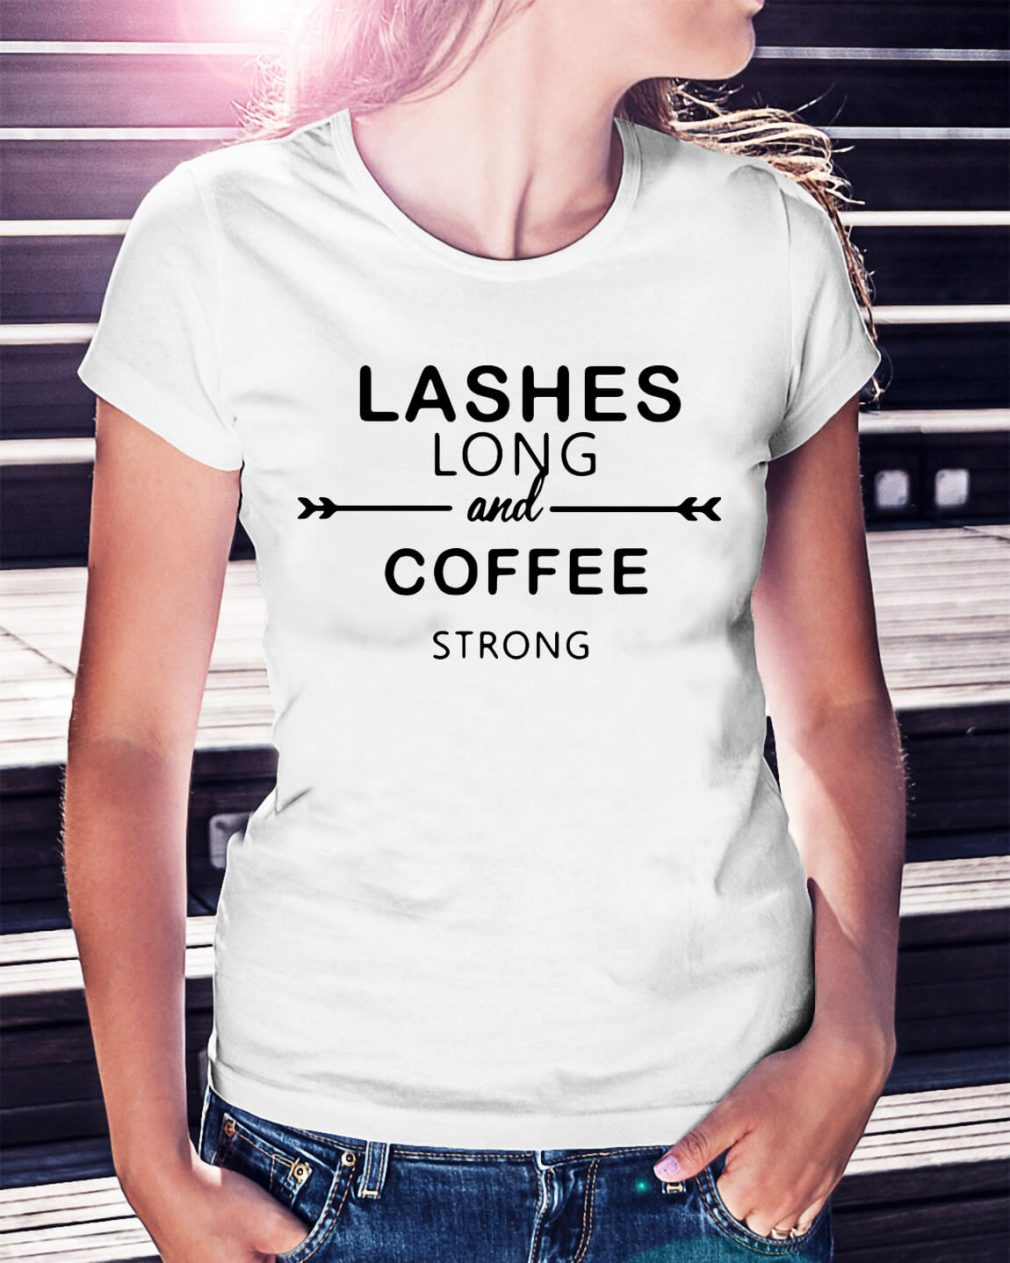 Lashes long and coffee strong shirt